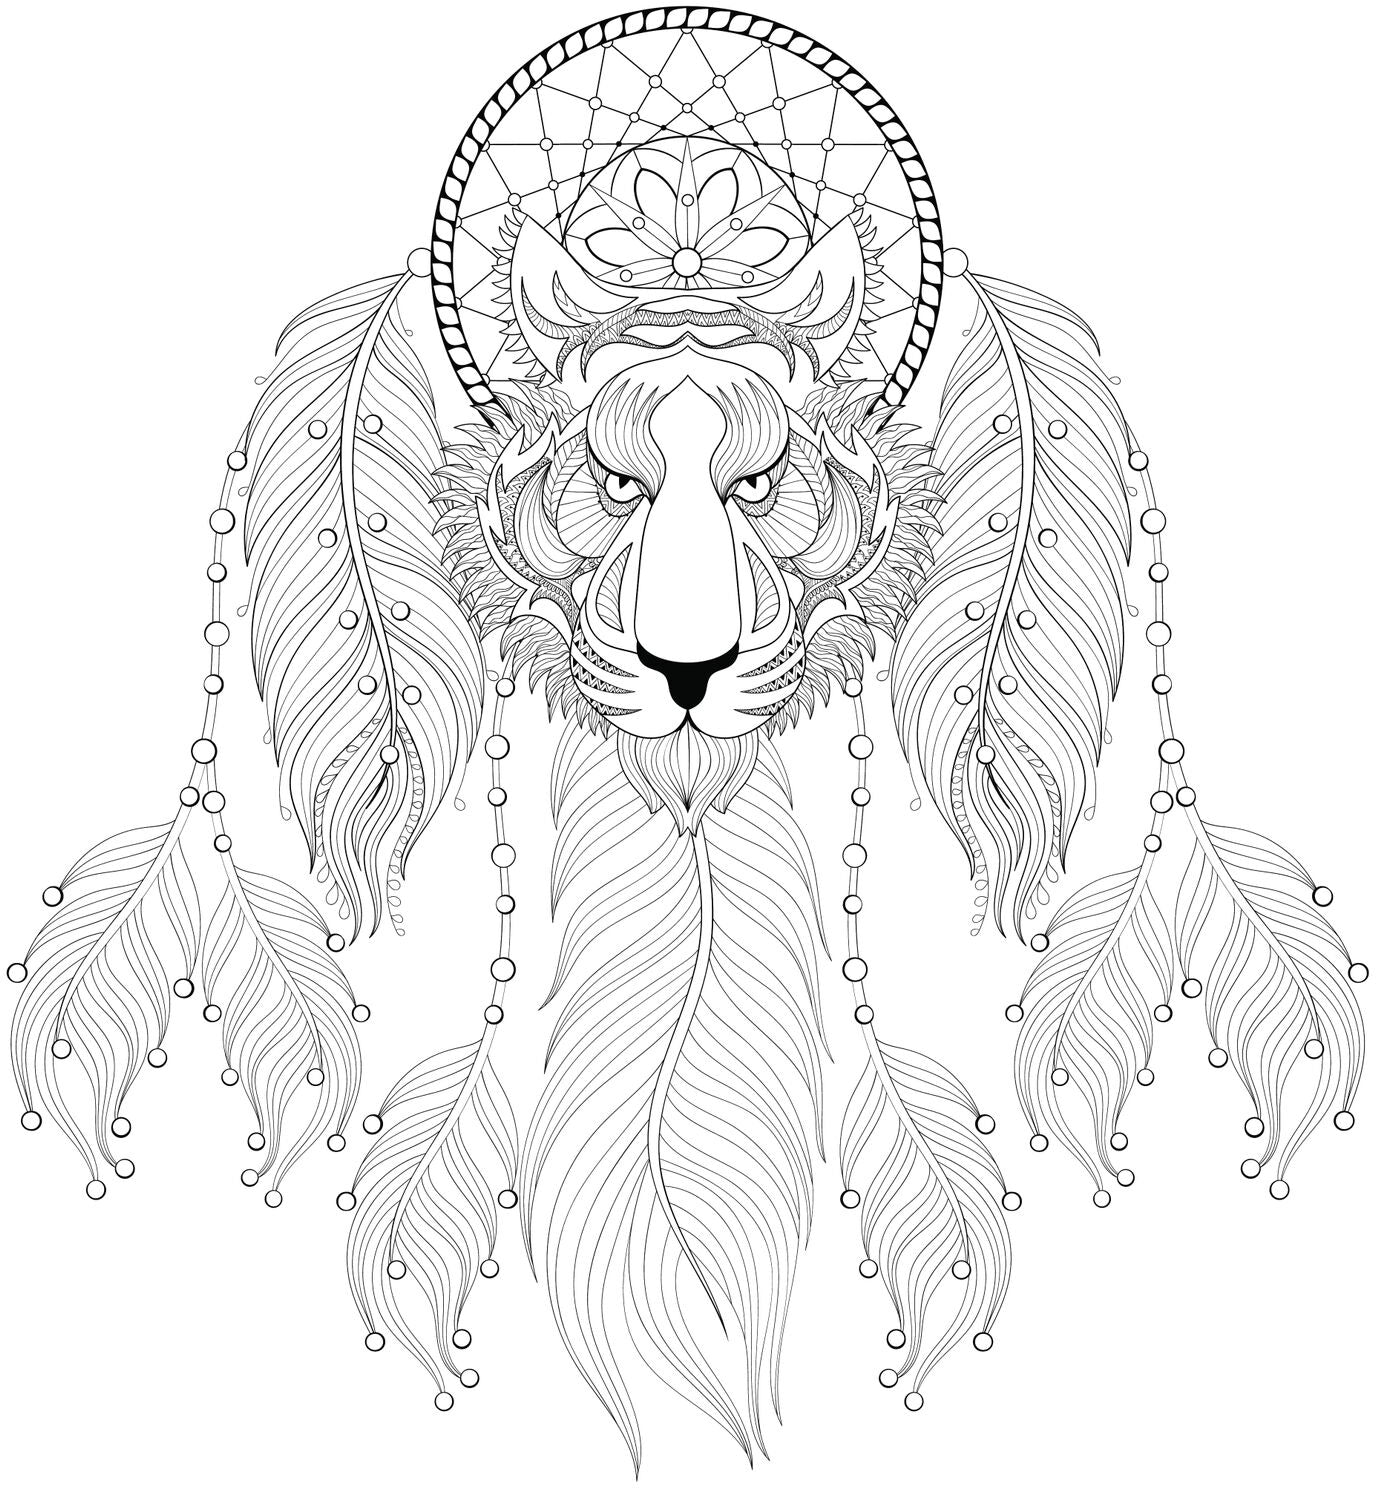 Intense Lion with Dream Catcher and Feathers Vinyl Decal Sticker